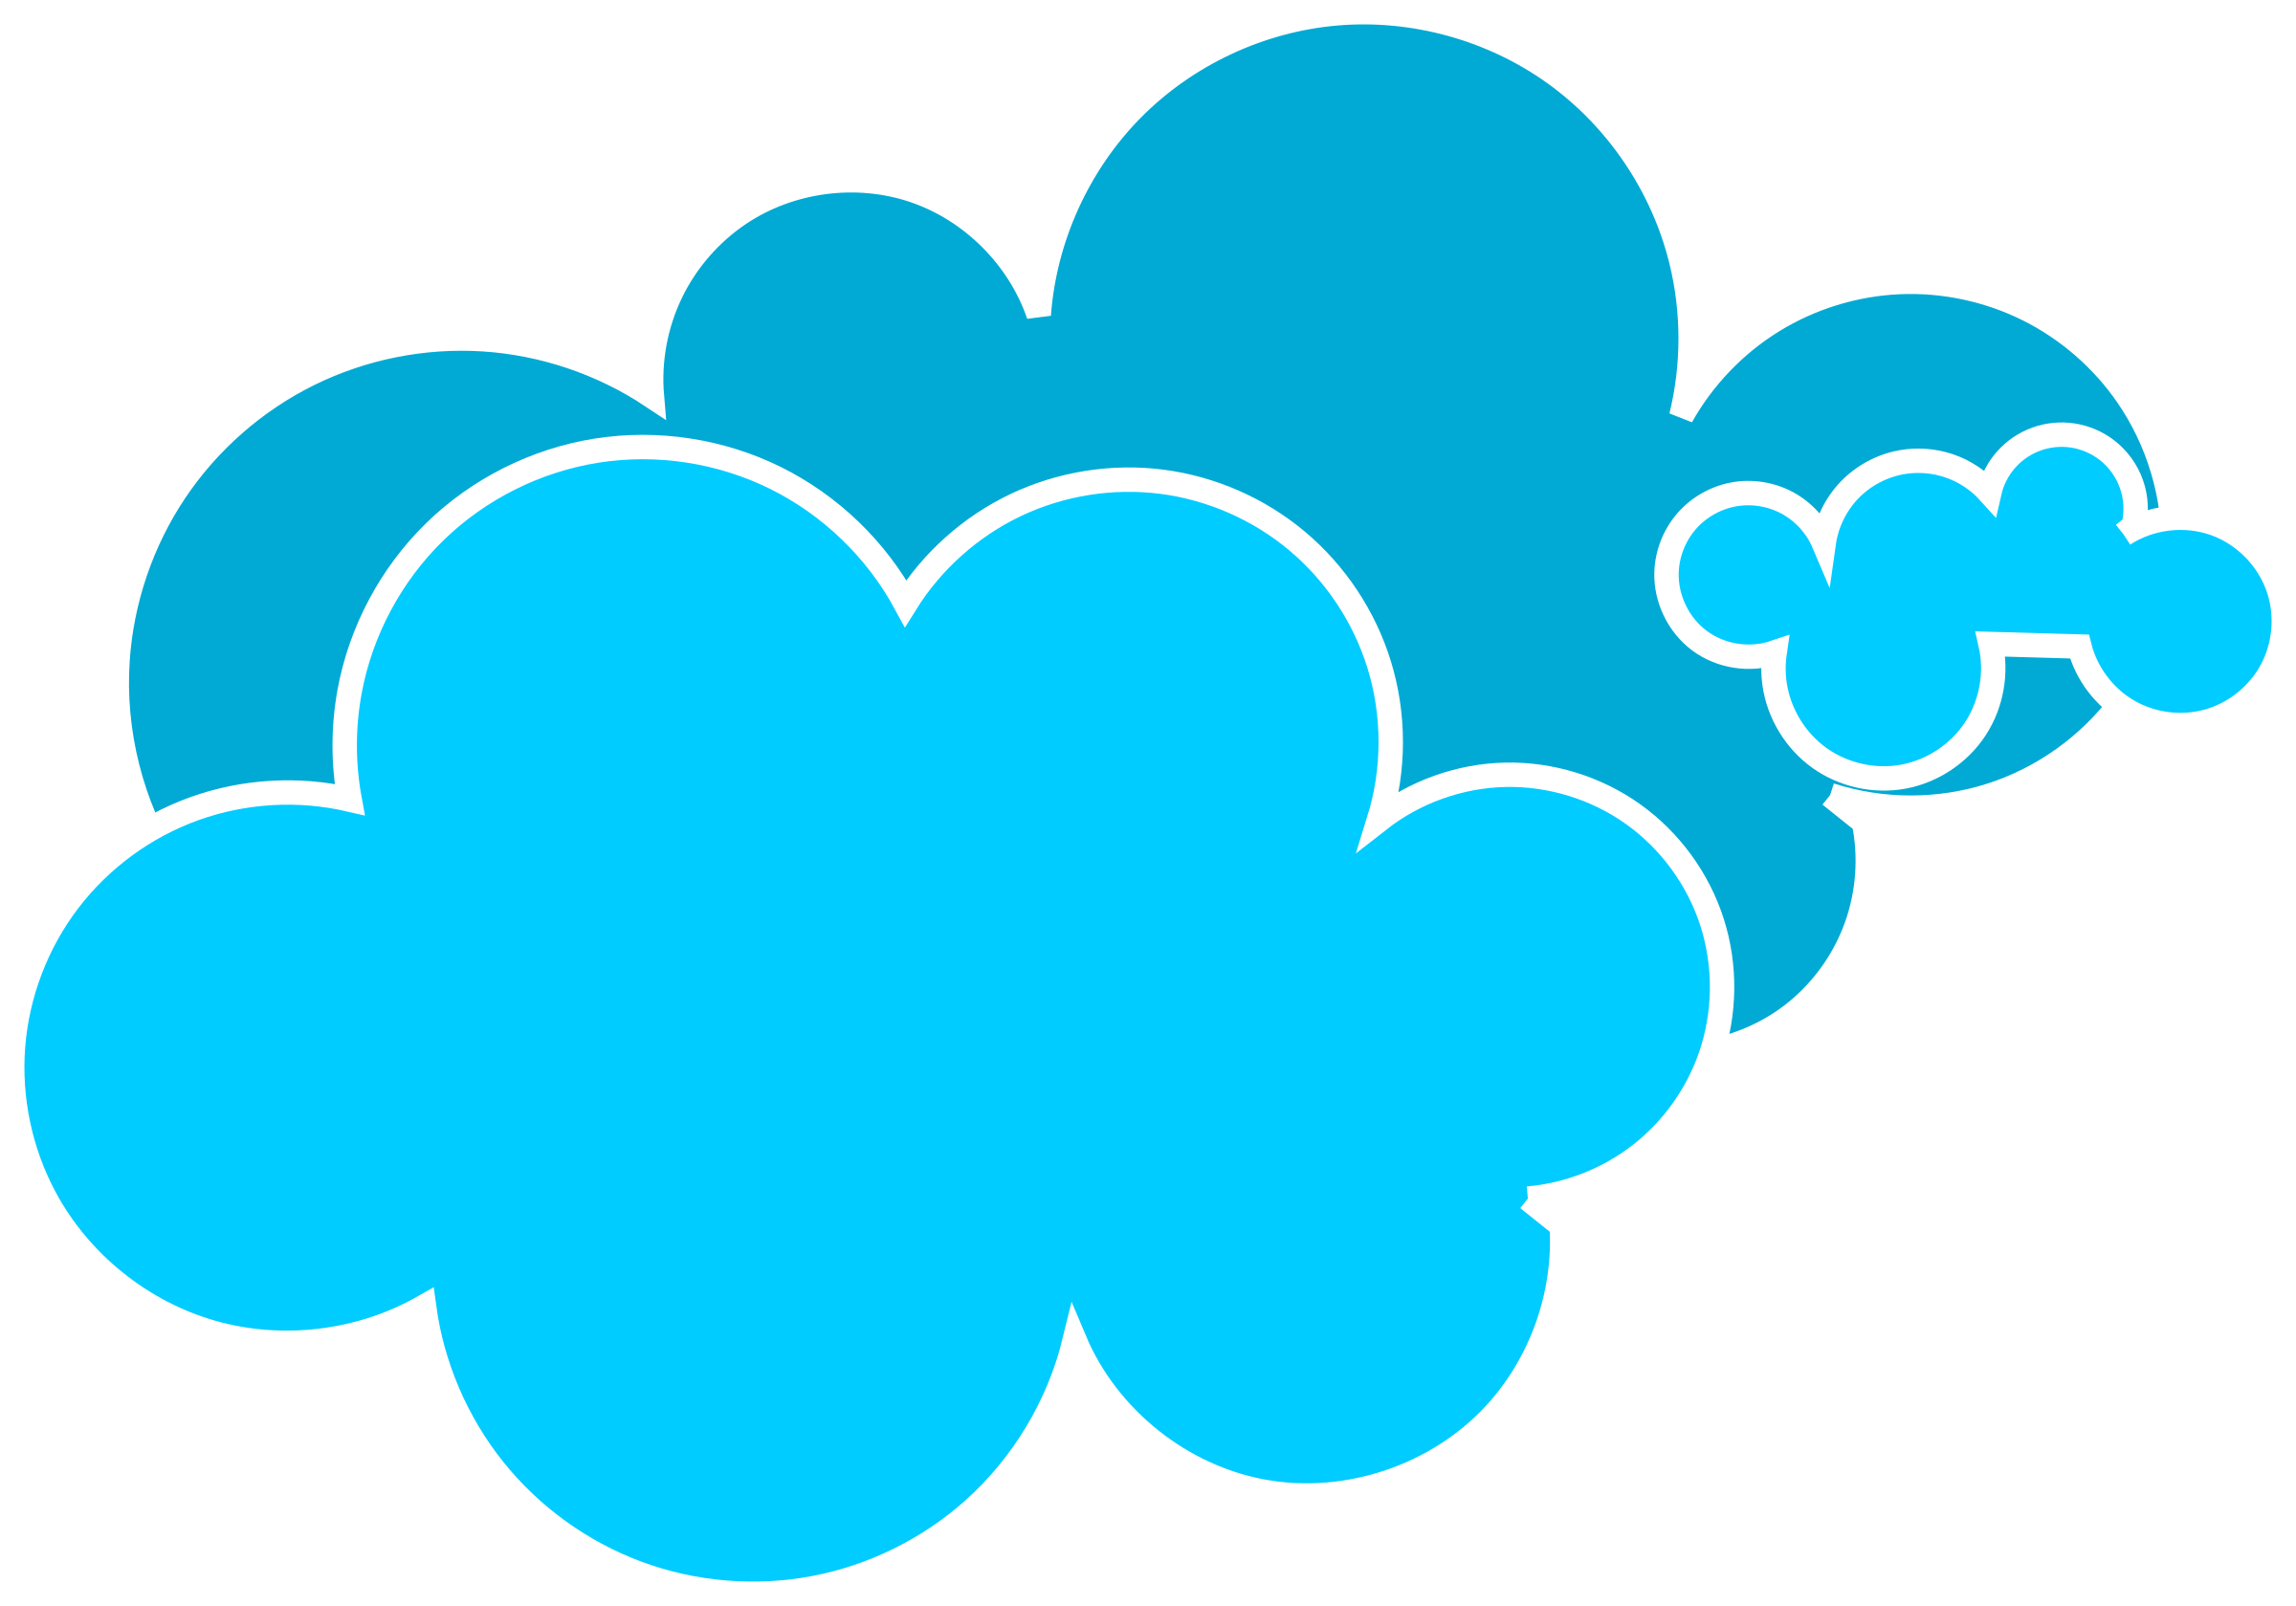 Blue Cloud Clipart Cupcake.